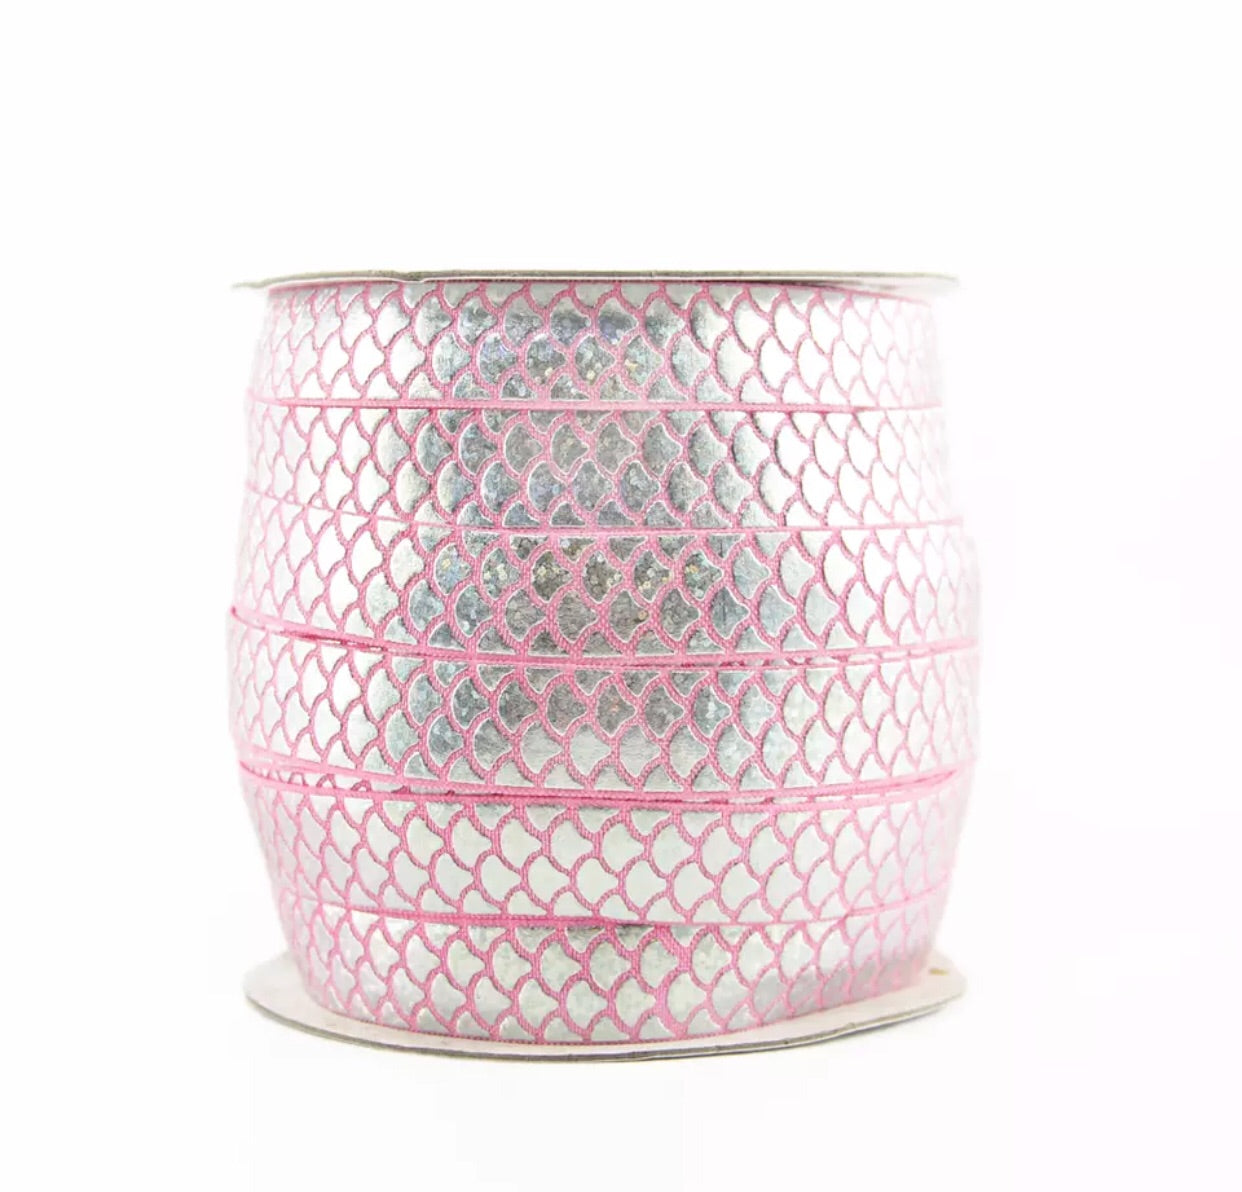 Elastic - Mermaid Scale Silver on Pink - shabbyflowers.com